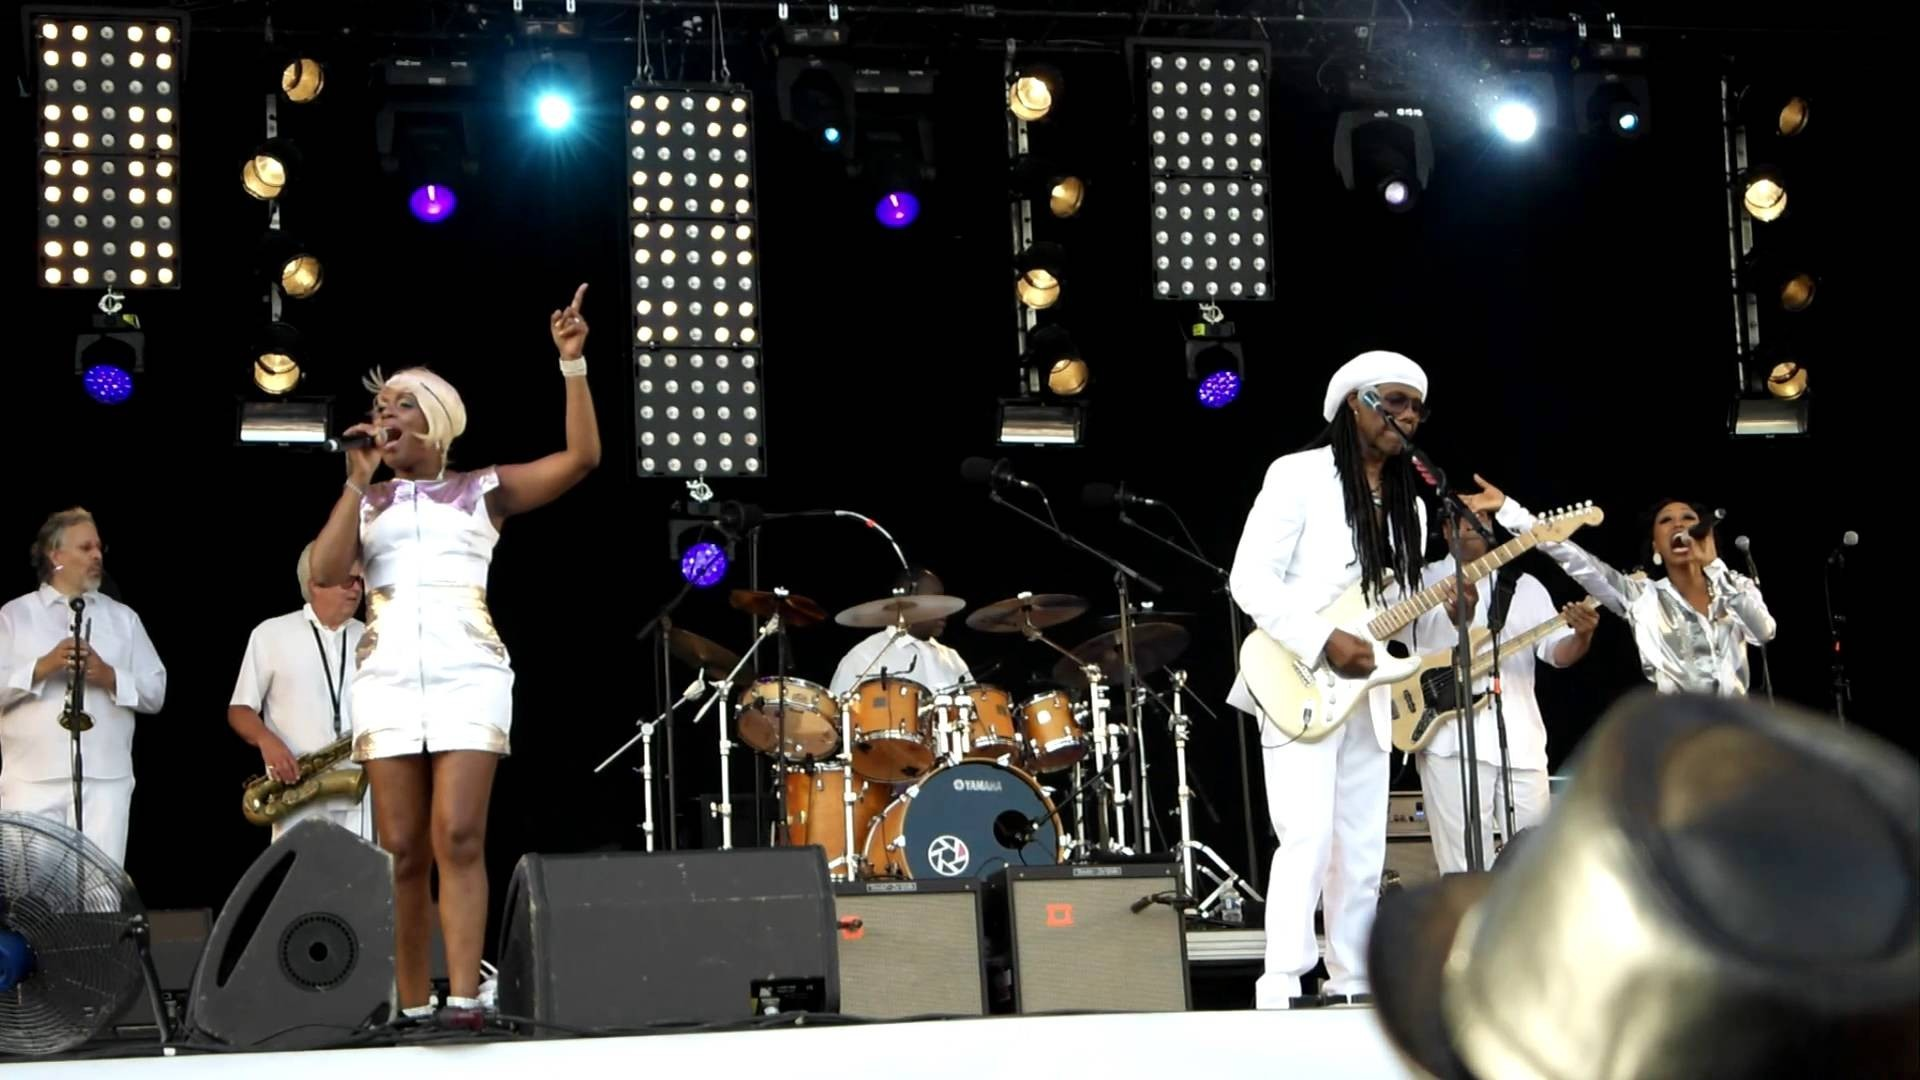 Dance/Funk rockers Chic celebrate nearly forty years as a band with music